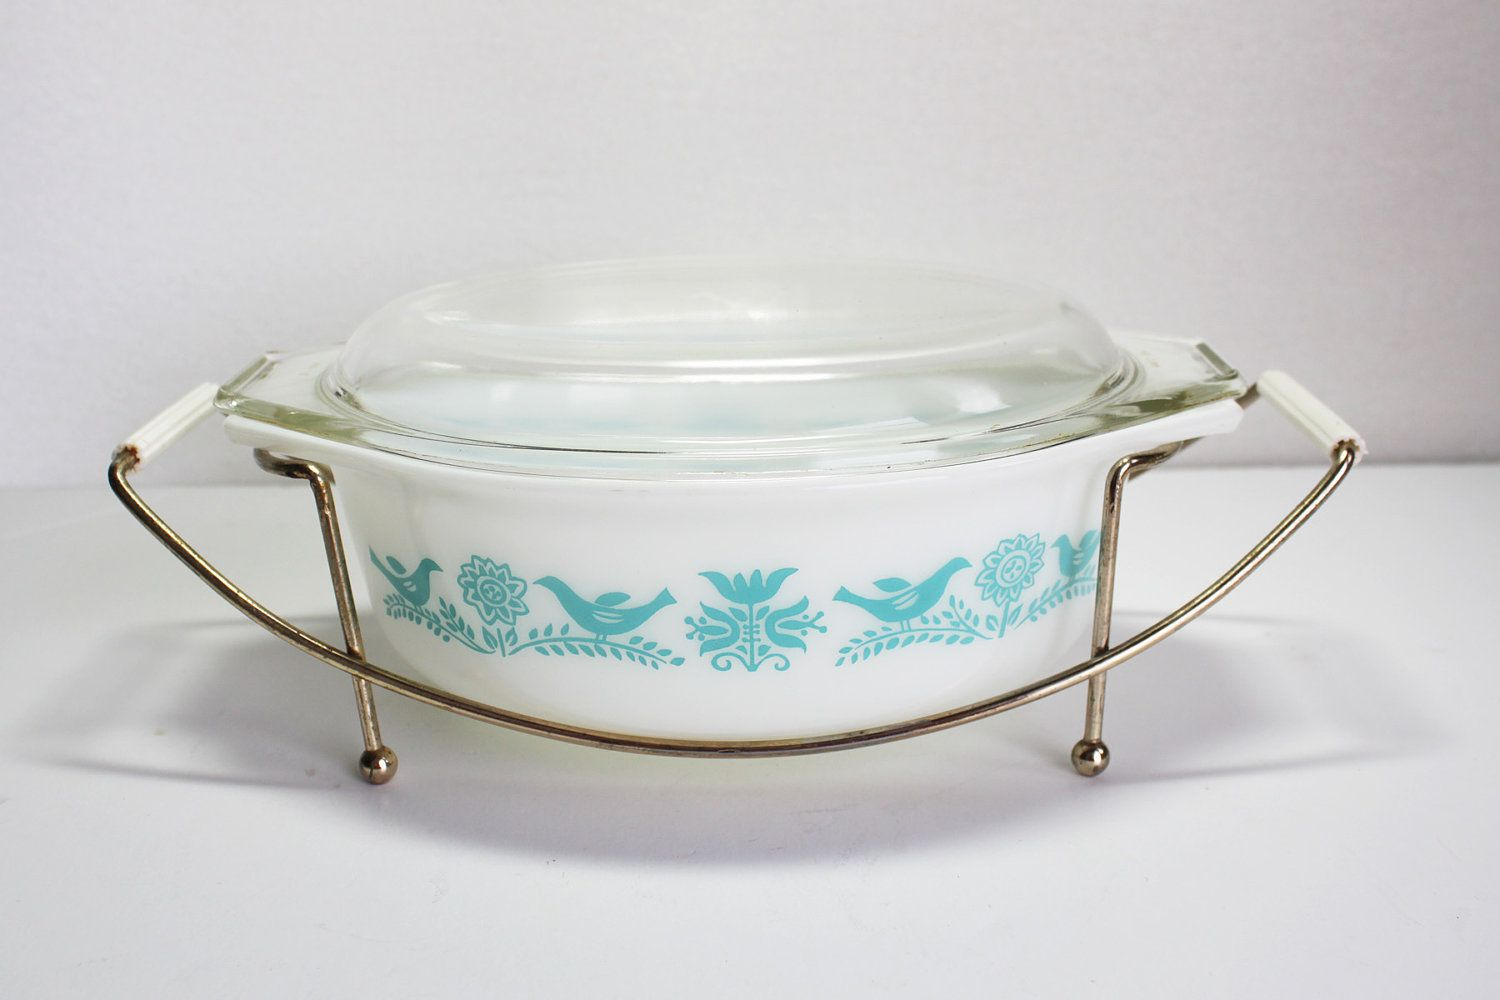 Pyrex Bluebird Casserole Dish with Lid and Cradle, Promotional Pyrex ...